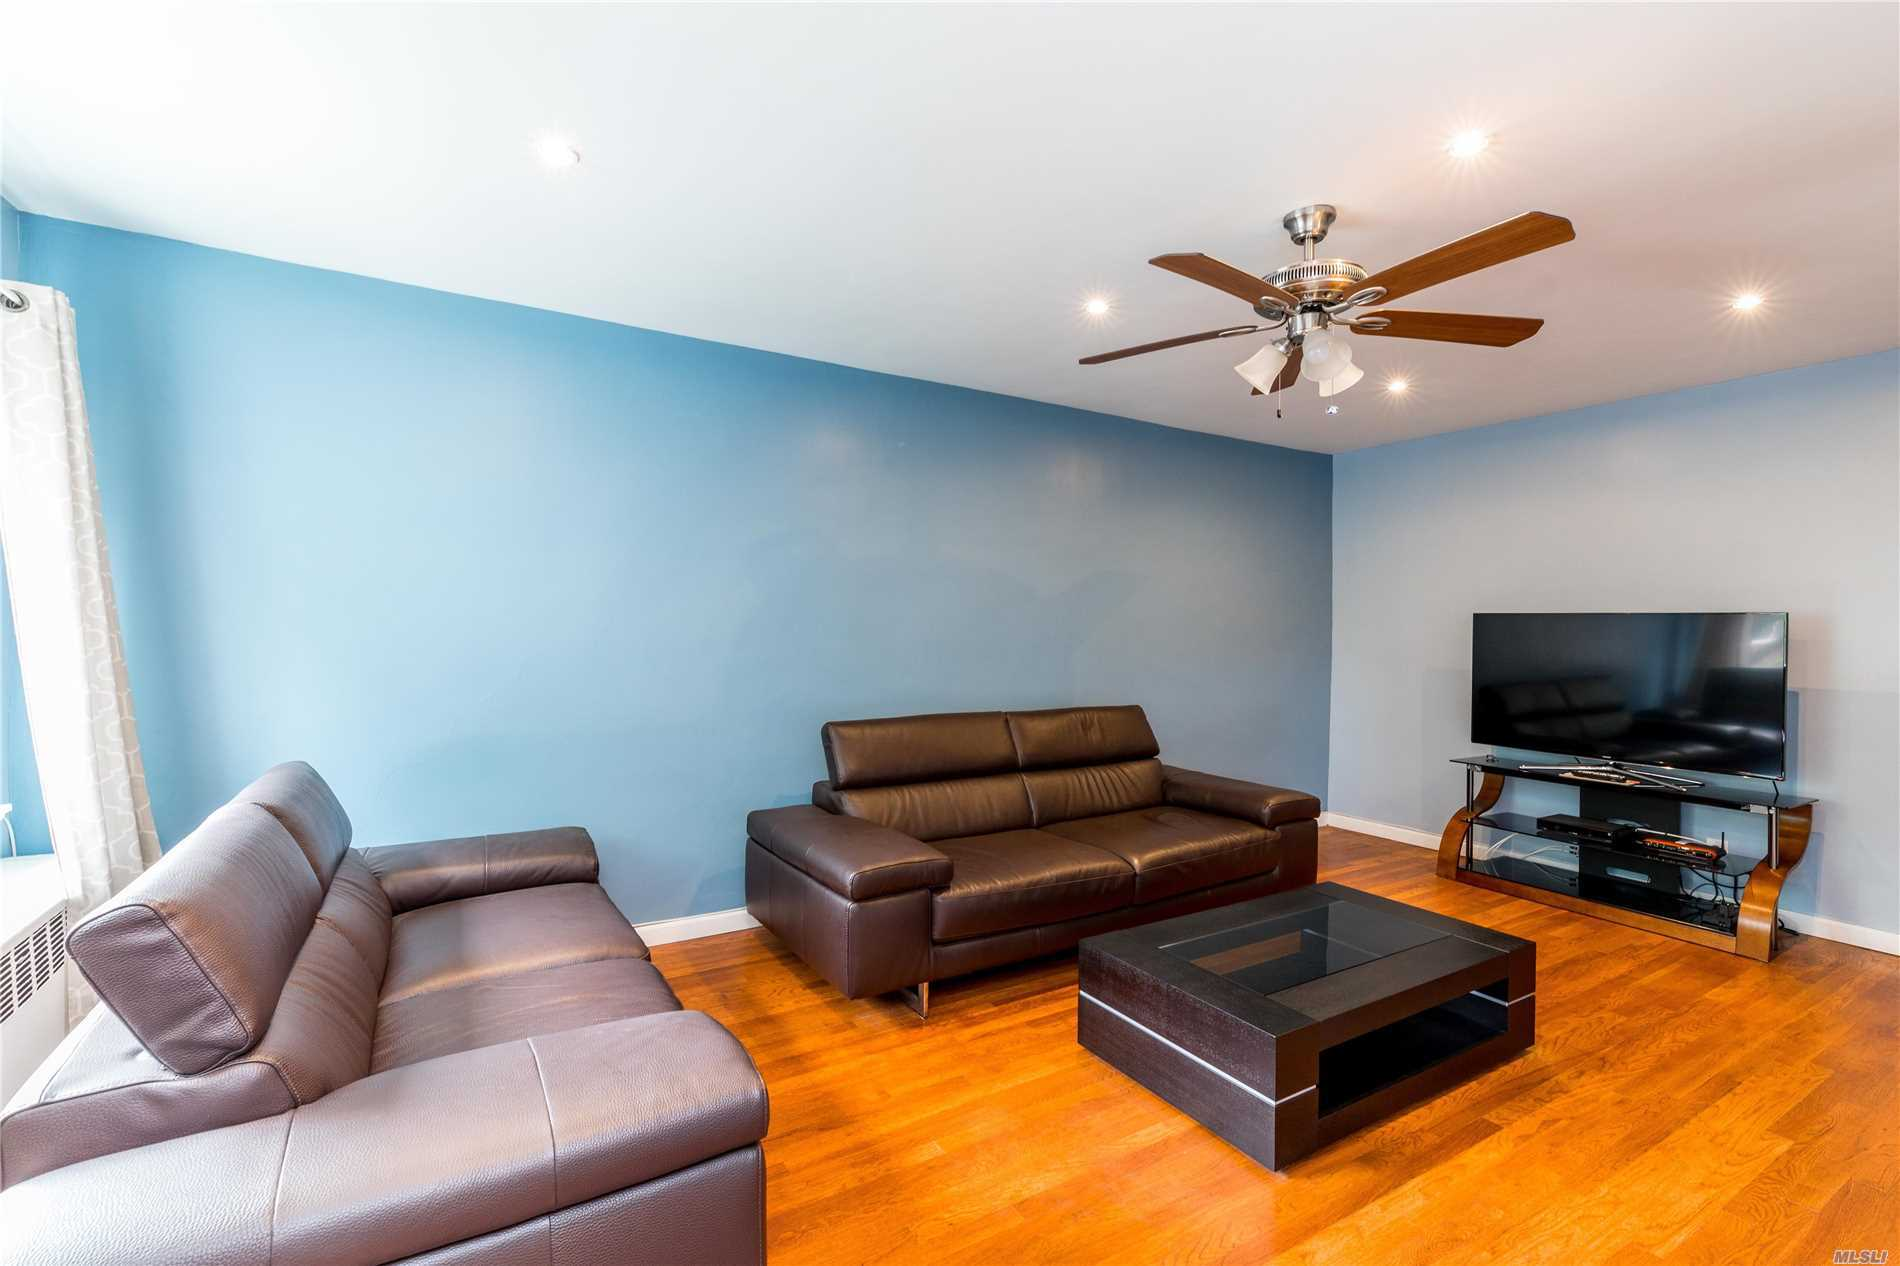 Excellent Opportunity To Own This Property, 2-Br, 1-Ba Over 1-Br 1-Ba And A Full Finished Basement In A Great Quiet Block.